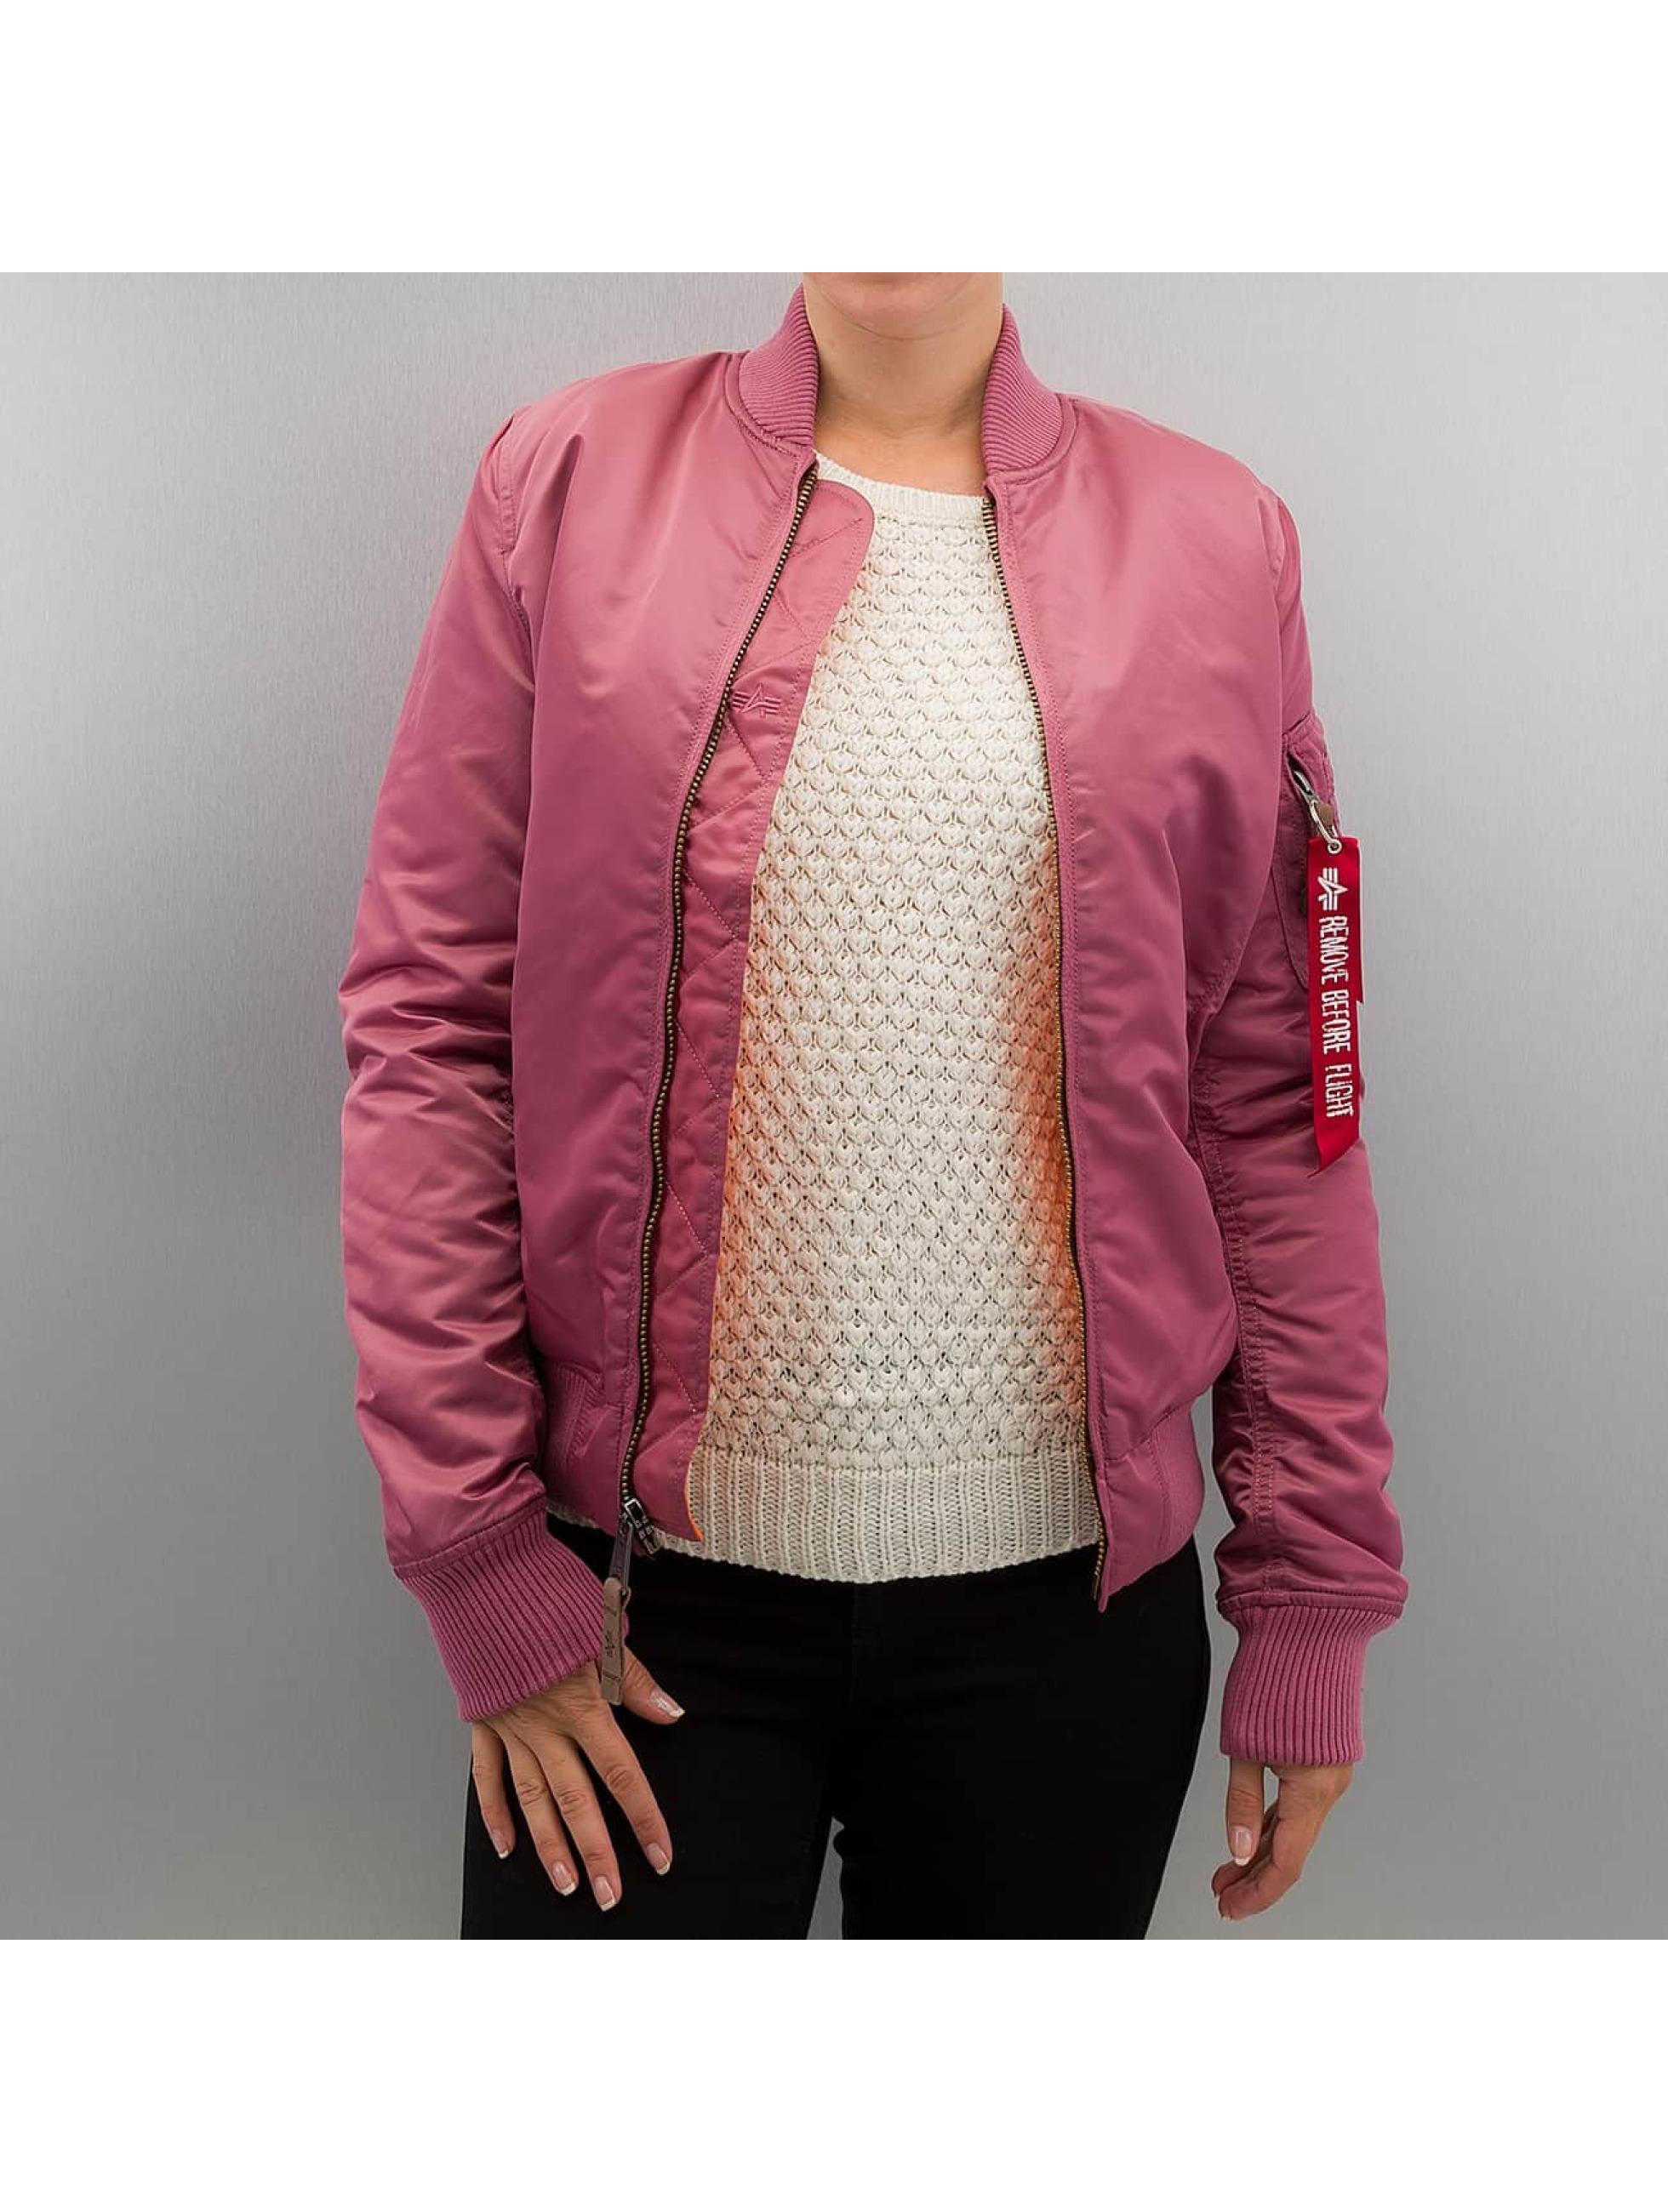 Alpha Industries Frauen Bomberjacke Ma 1 VF 59 in pink